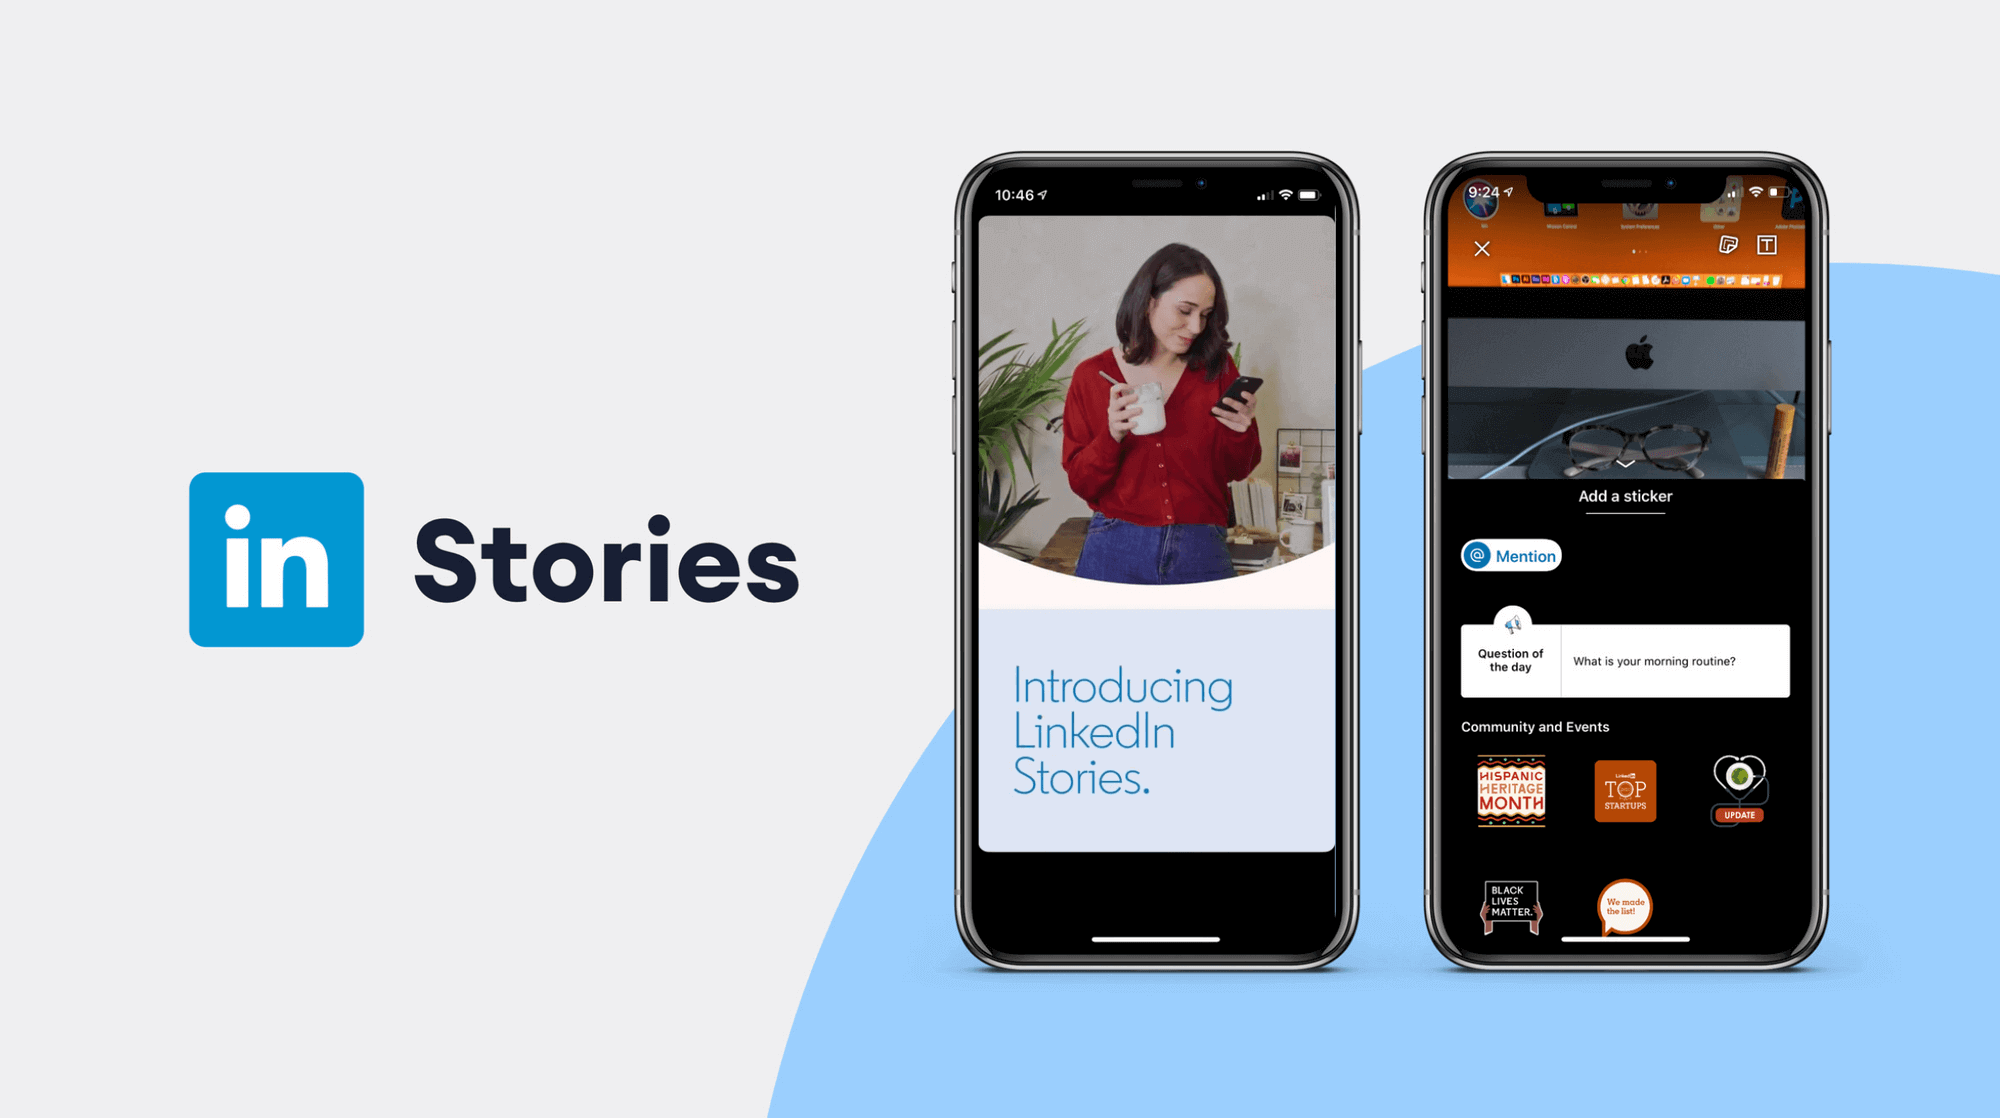 LinkedIn Stories: The Complete Guide For Creating Standout Content